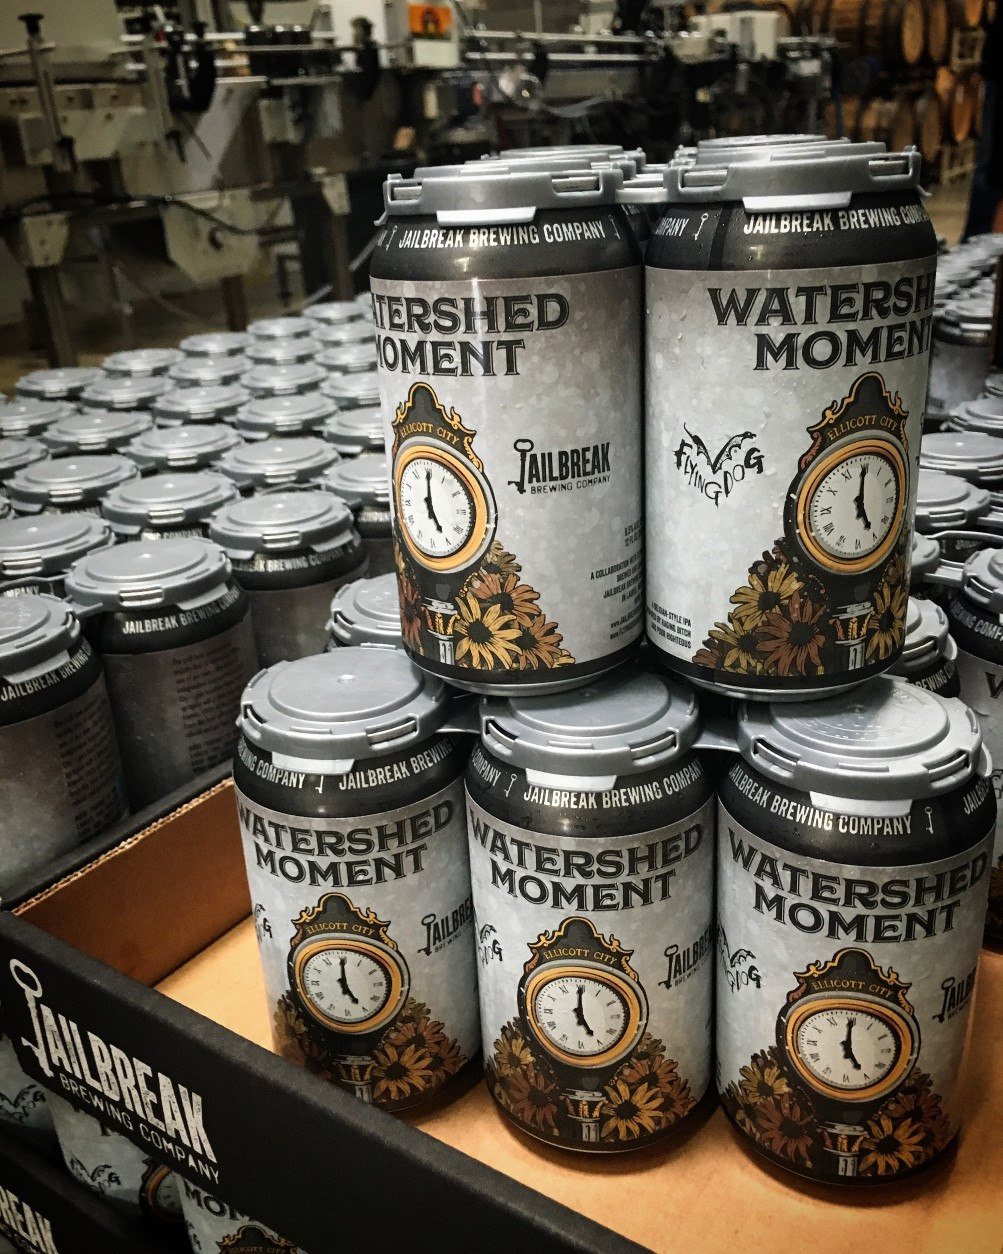 Flying Dog Brewery and Jailbreak Brewing Co. are jointly producing a beer to raise flood relief funds for Ellicott City. (Courtesy Flying Dog Brewery)